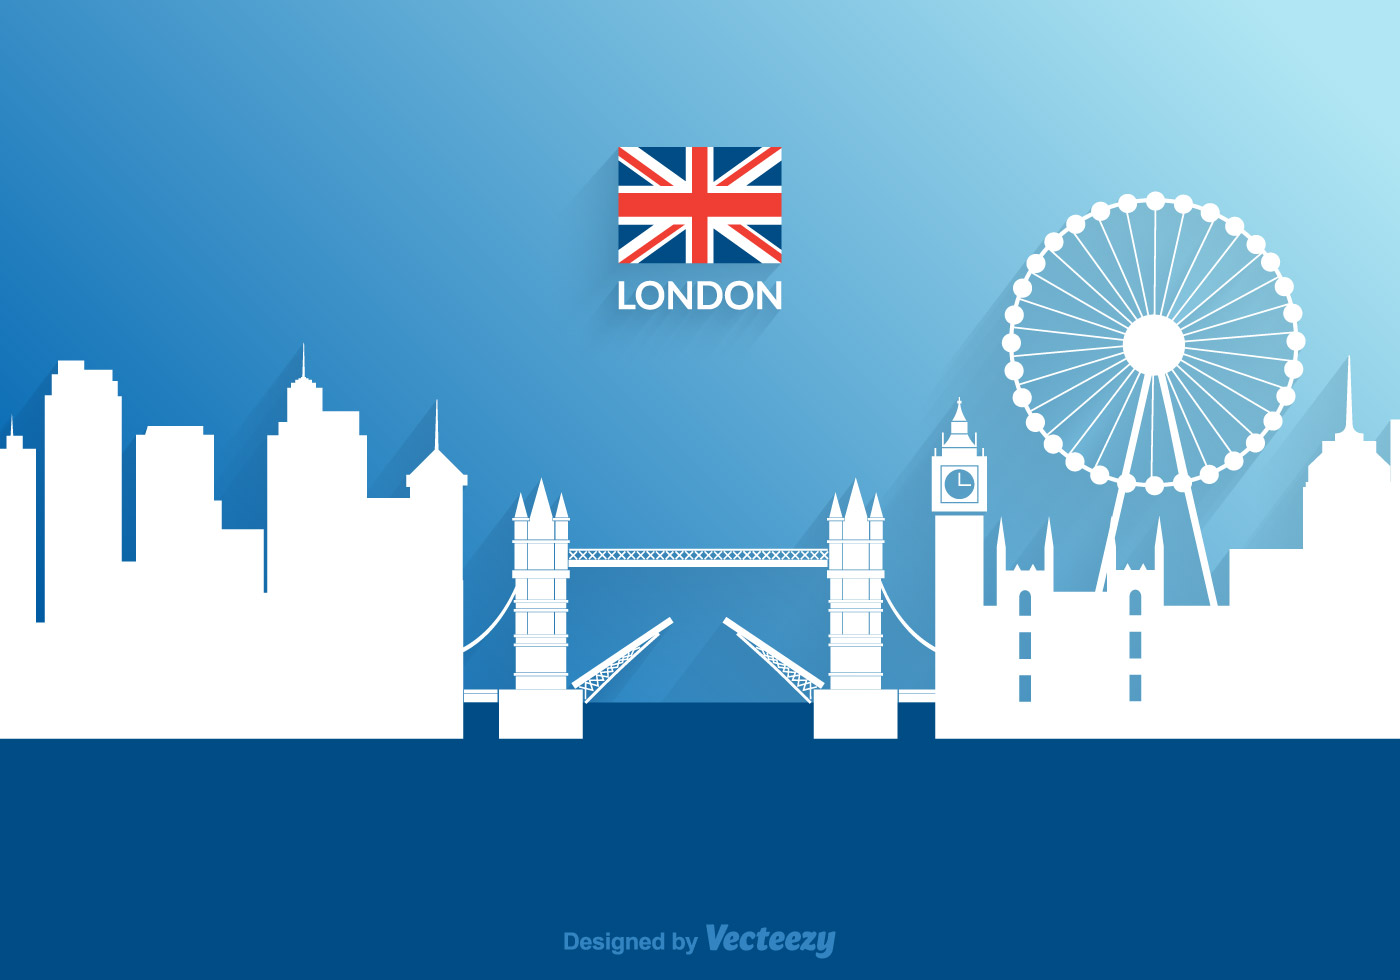 free vector cutout paper london cityscape download free